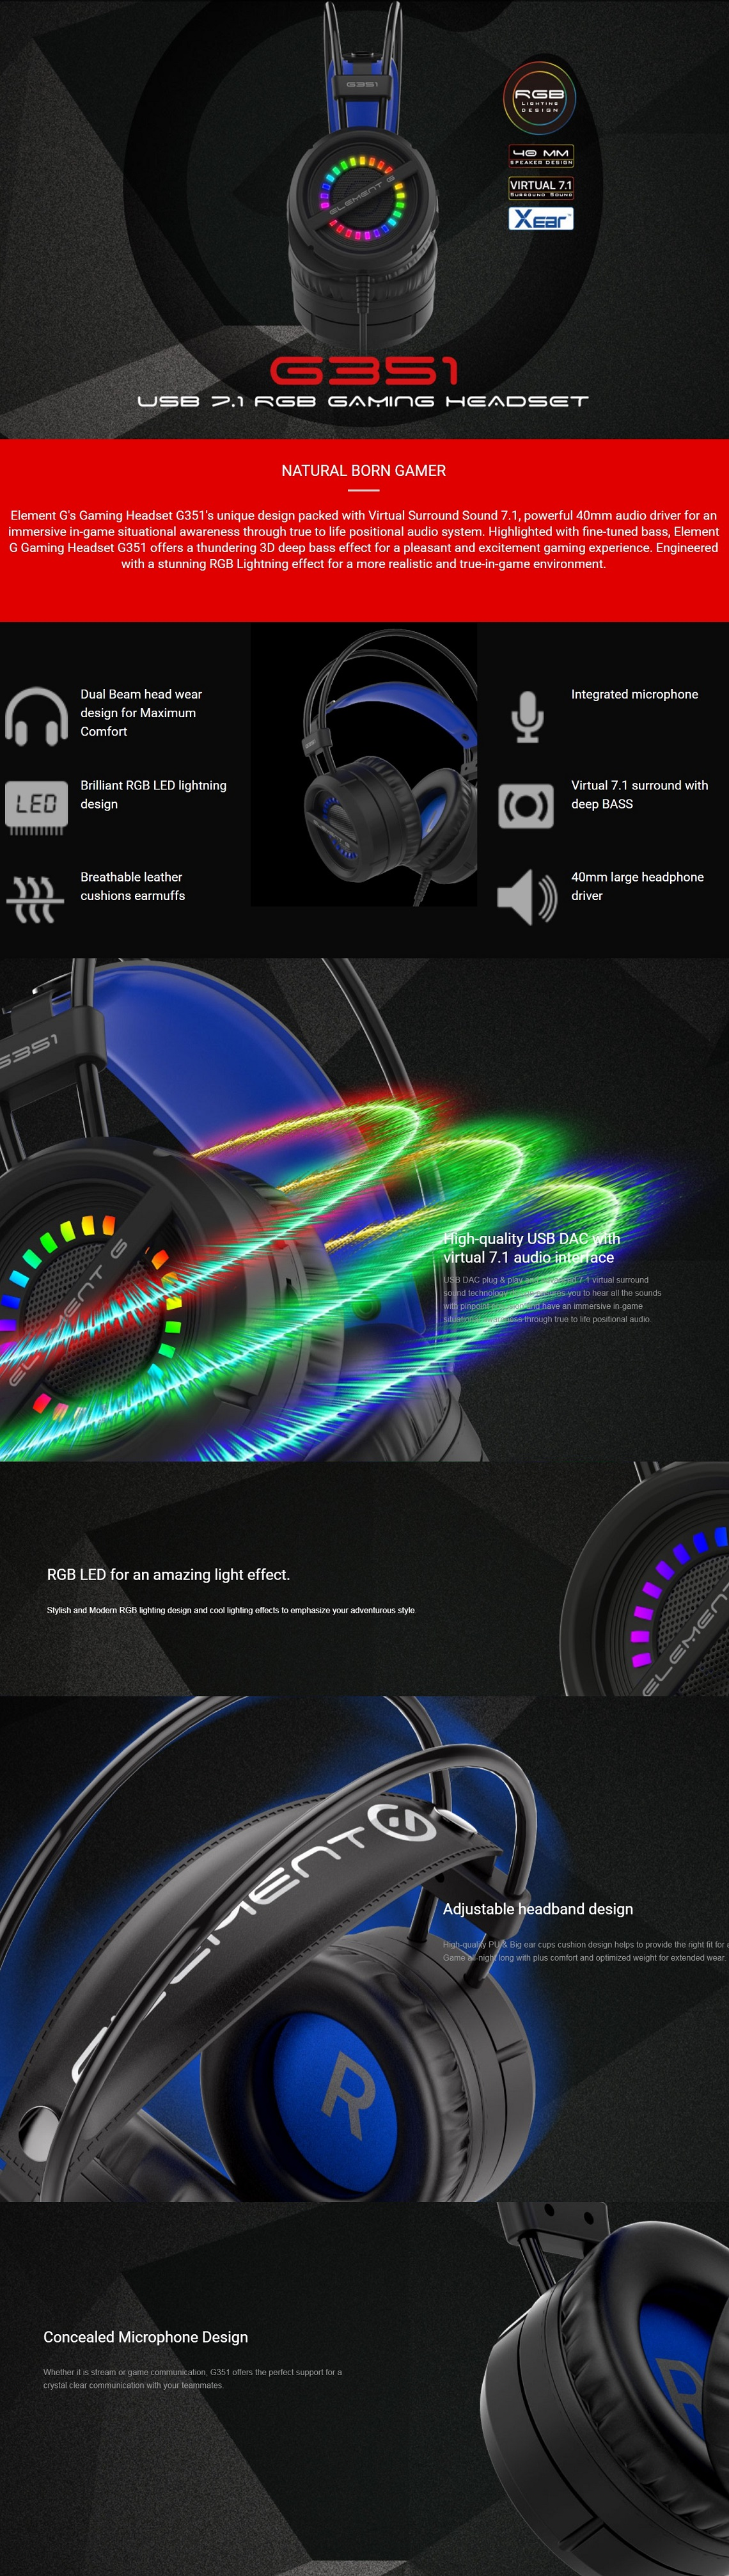 Verico Element G G351 RGB 7.1 USB Gaming Headset with Microphone &Volume Control